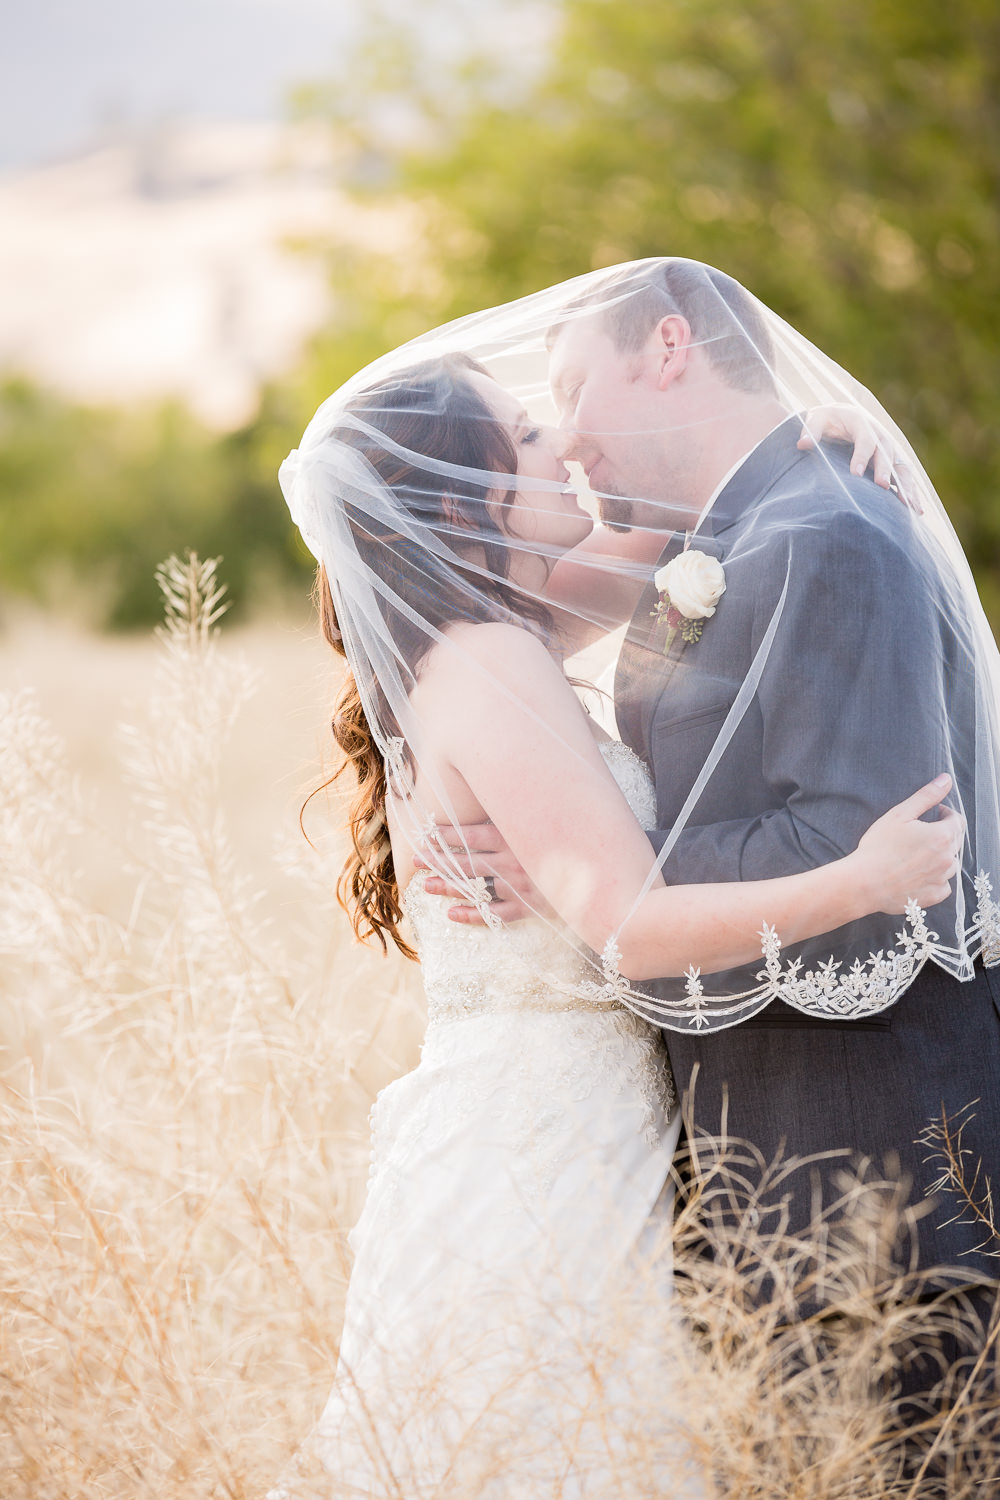 heritage-hall-missoula-montana-bride-groom-kiss-under-veil.jpg